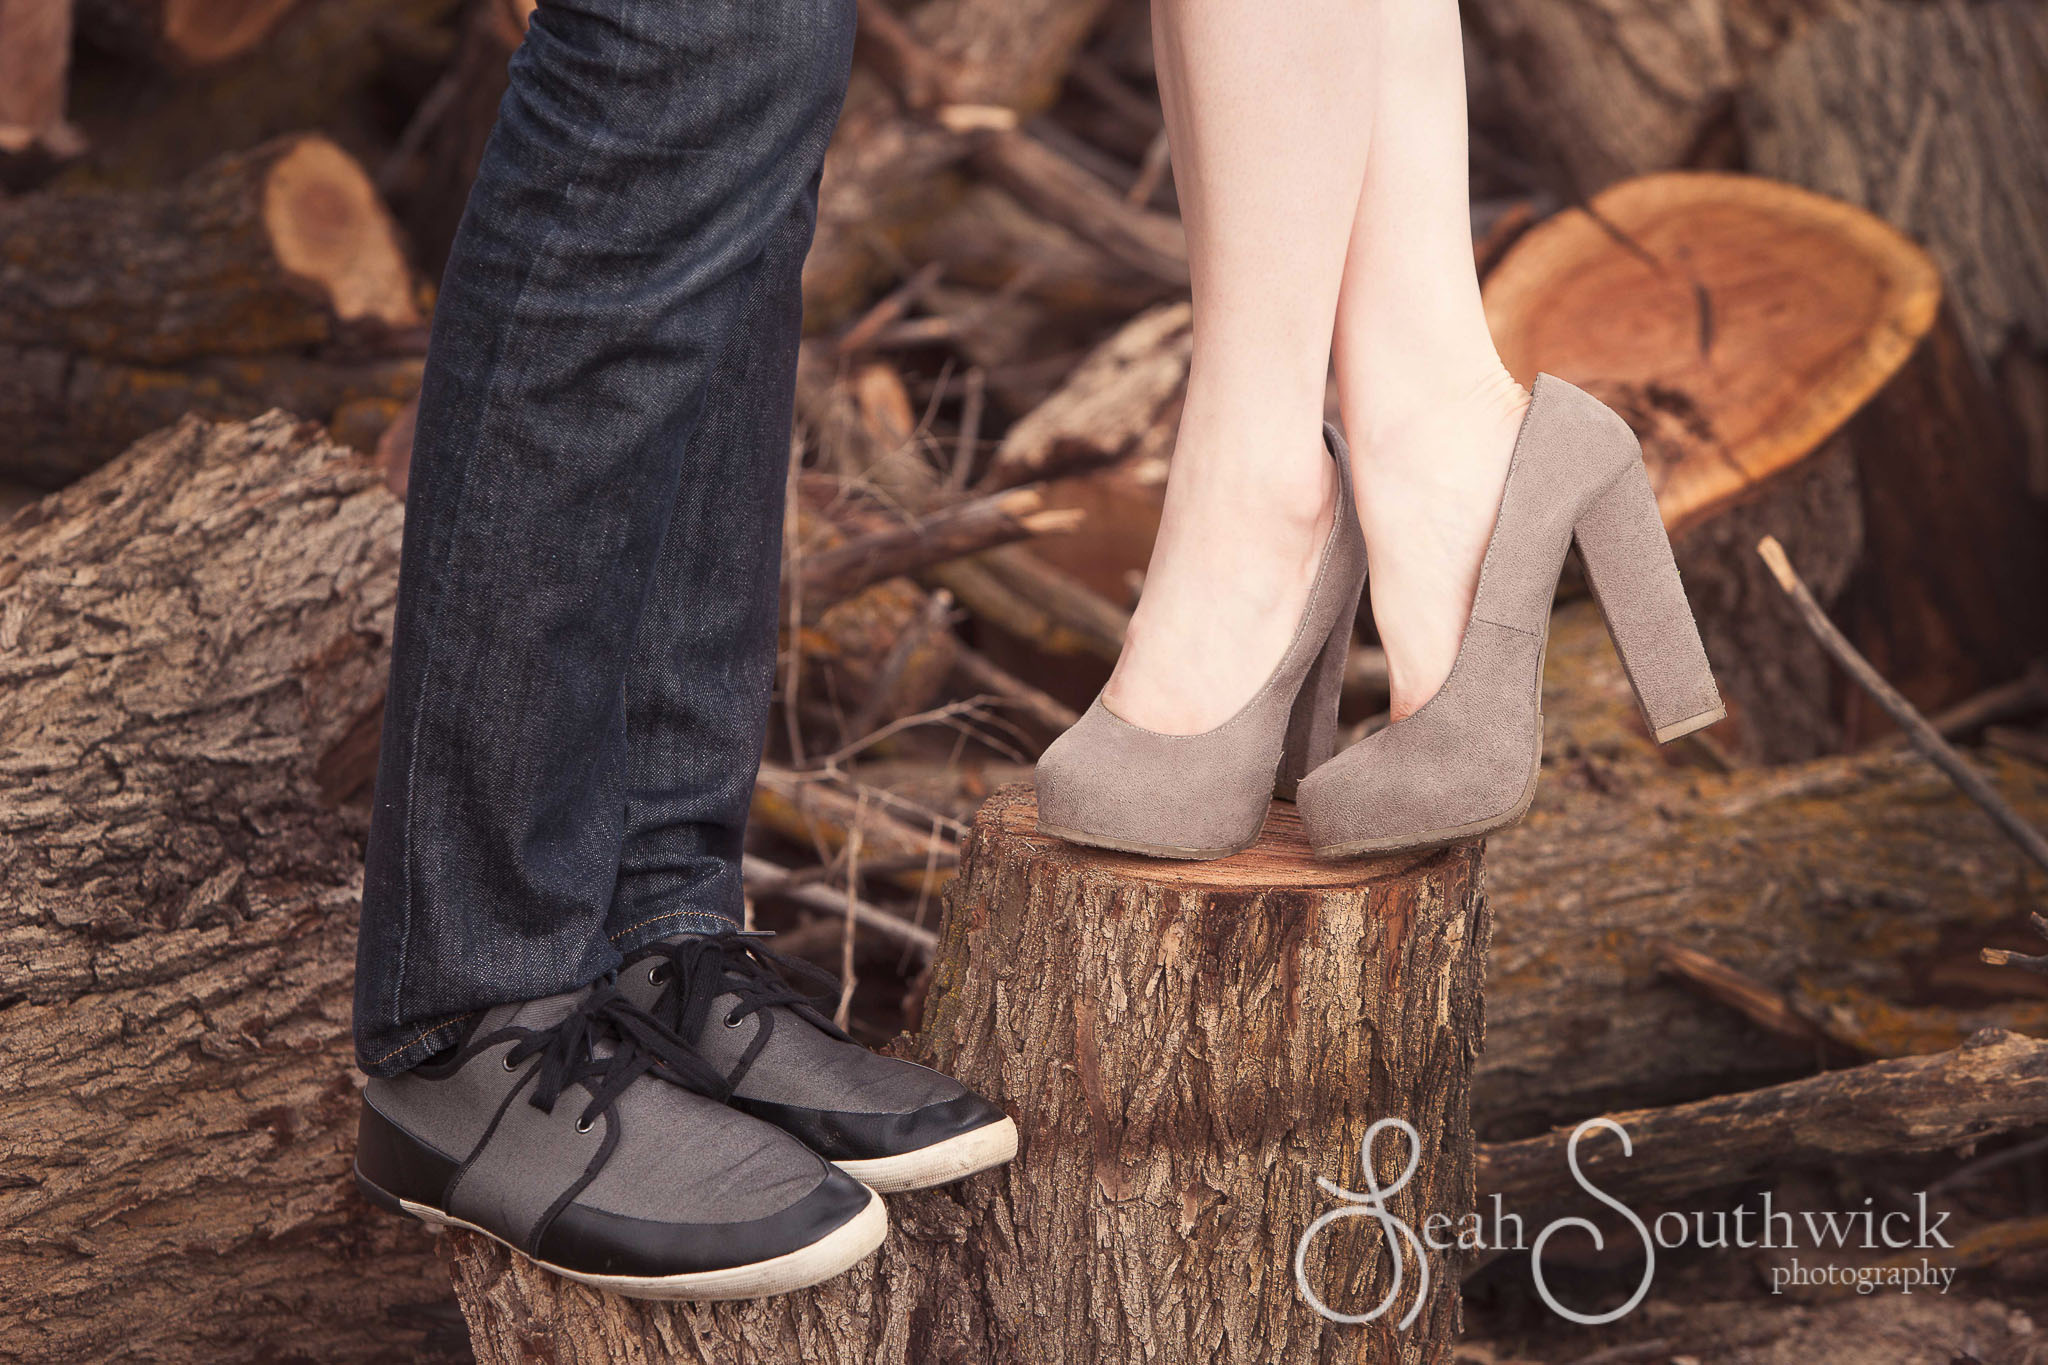 Engagement-Photography-Leah-Southwick-Photography-1.jpg